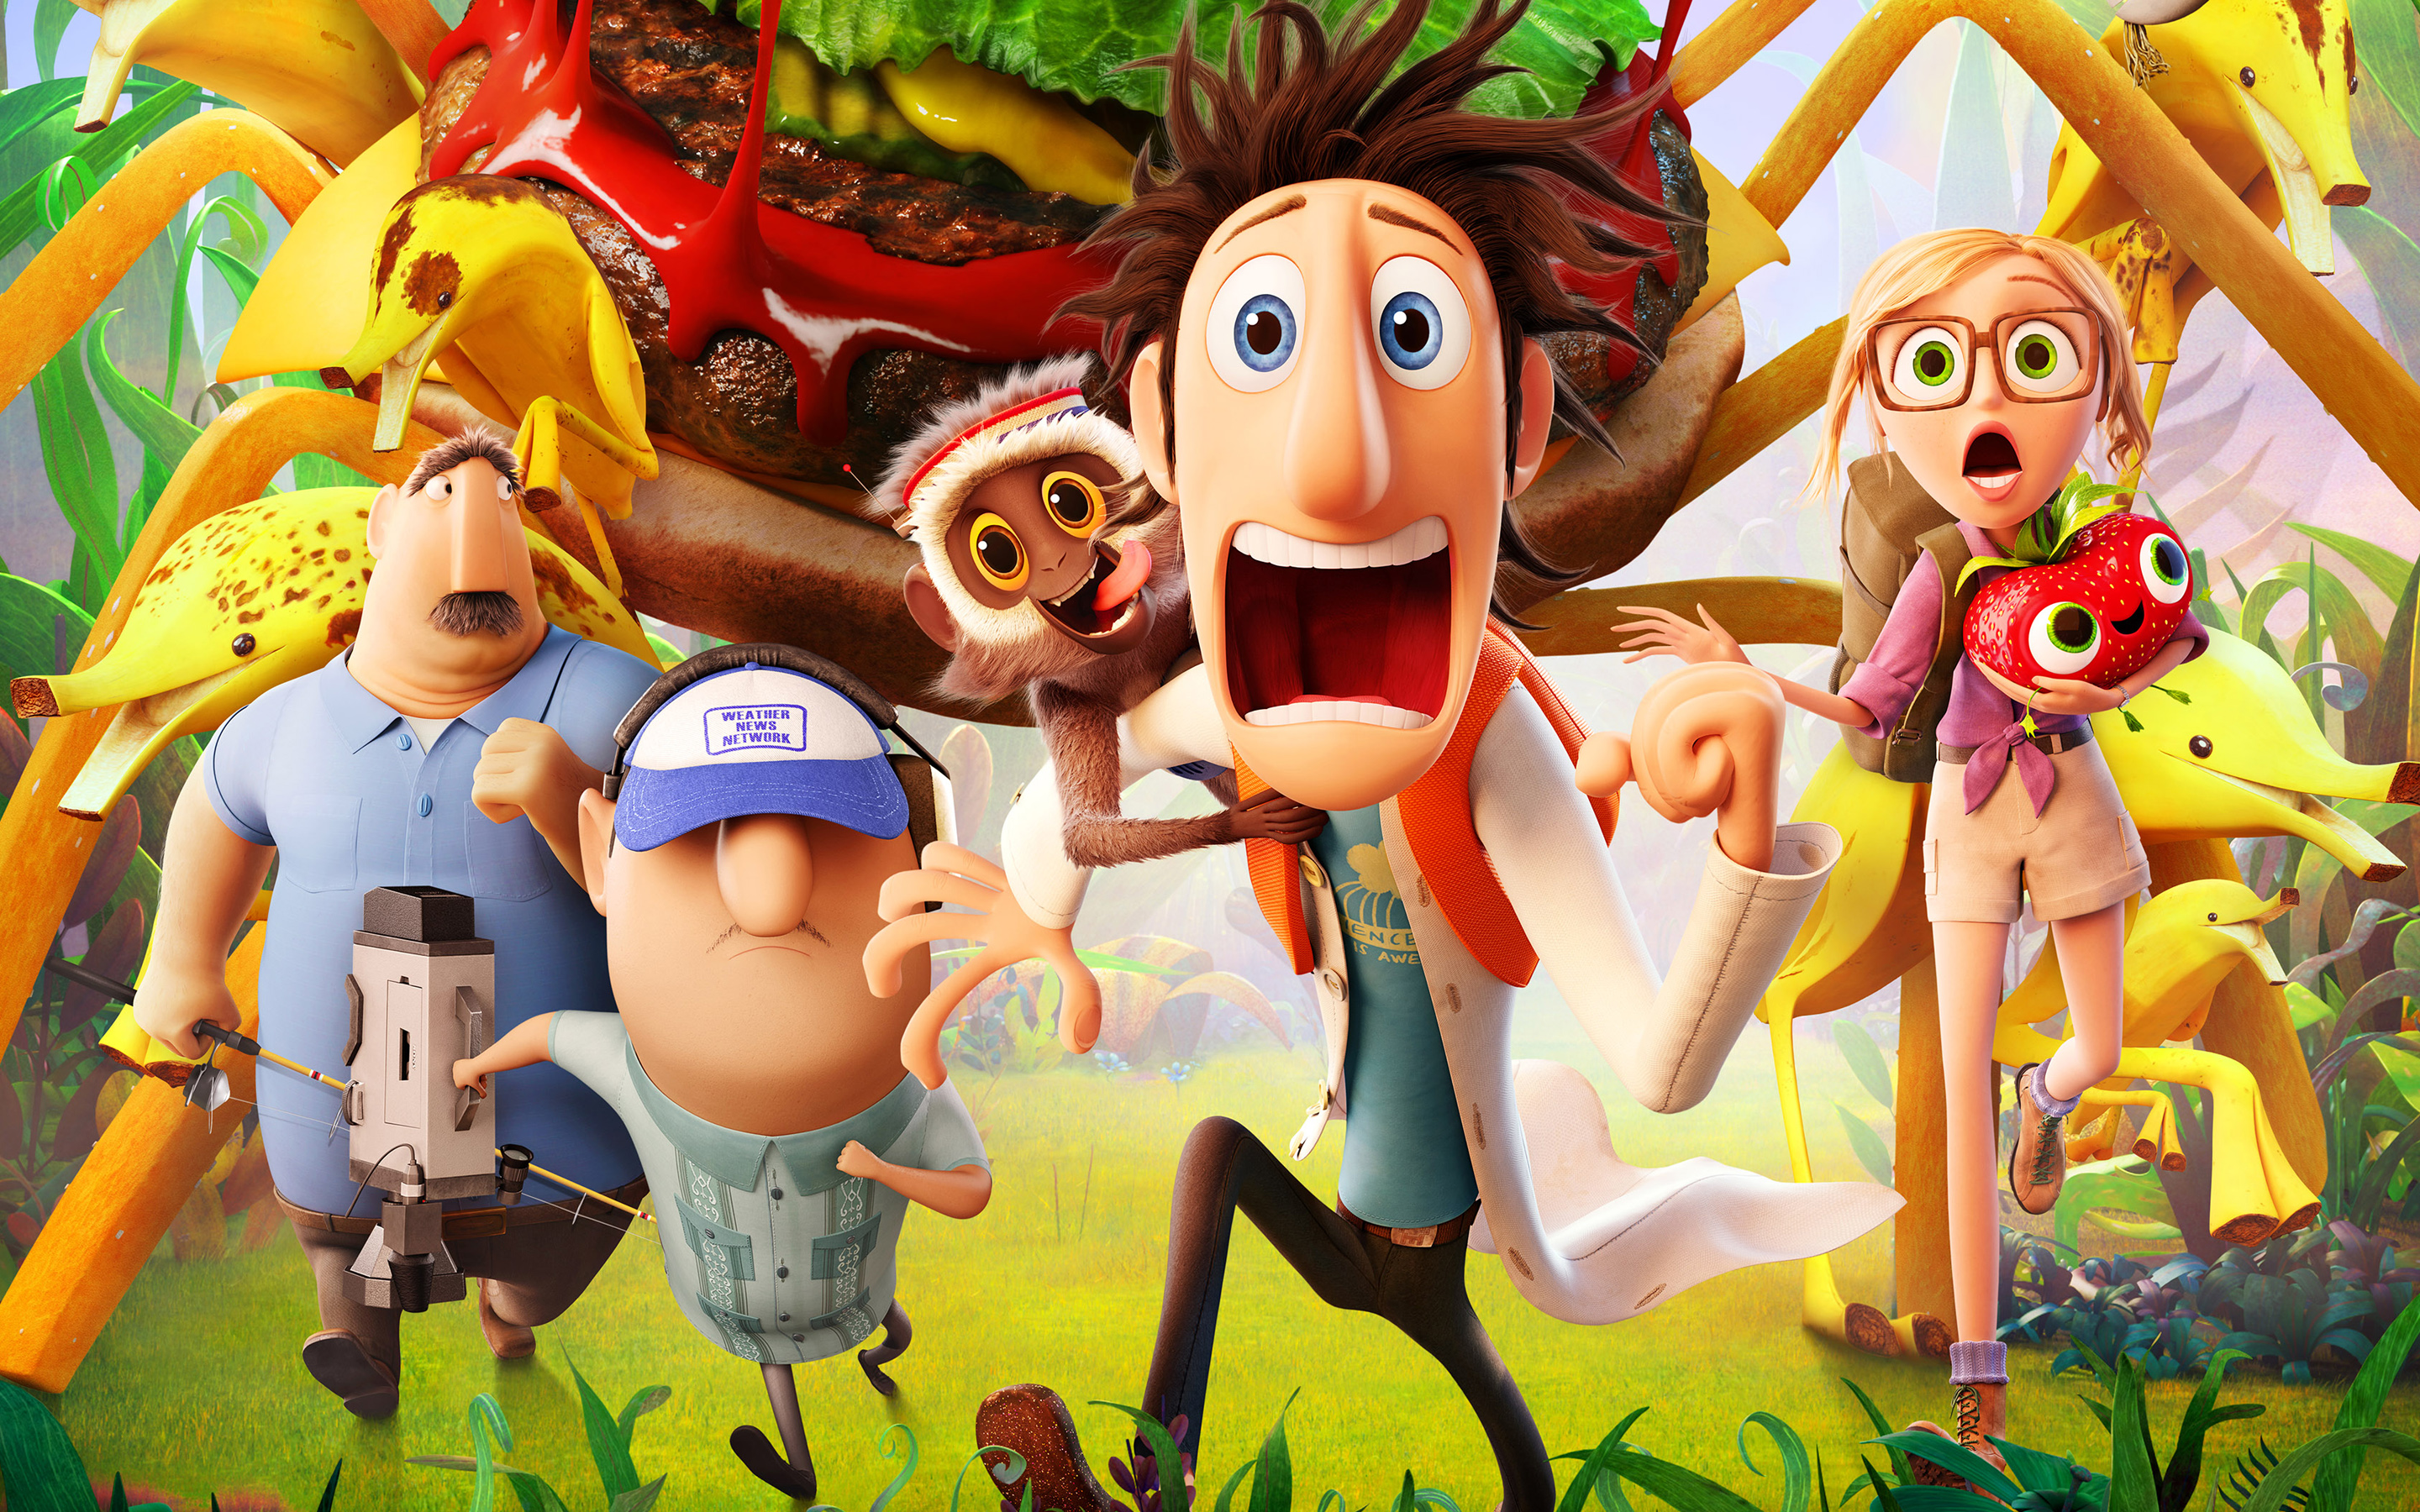 2013 Cloudy with a Chance of Meatballs 2 Movie 2220.81 Kb